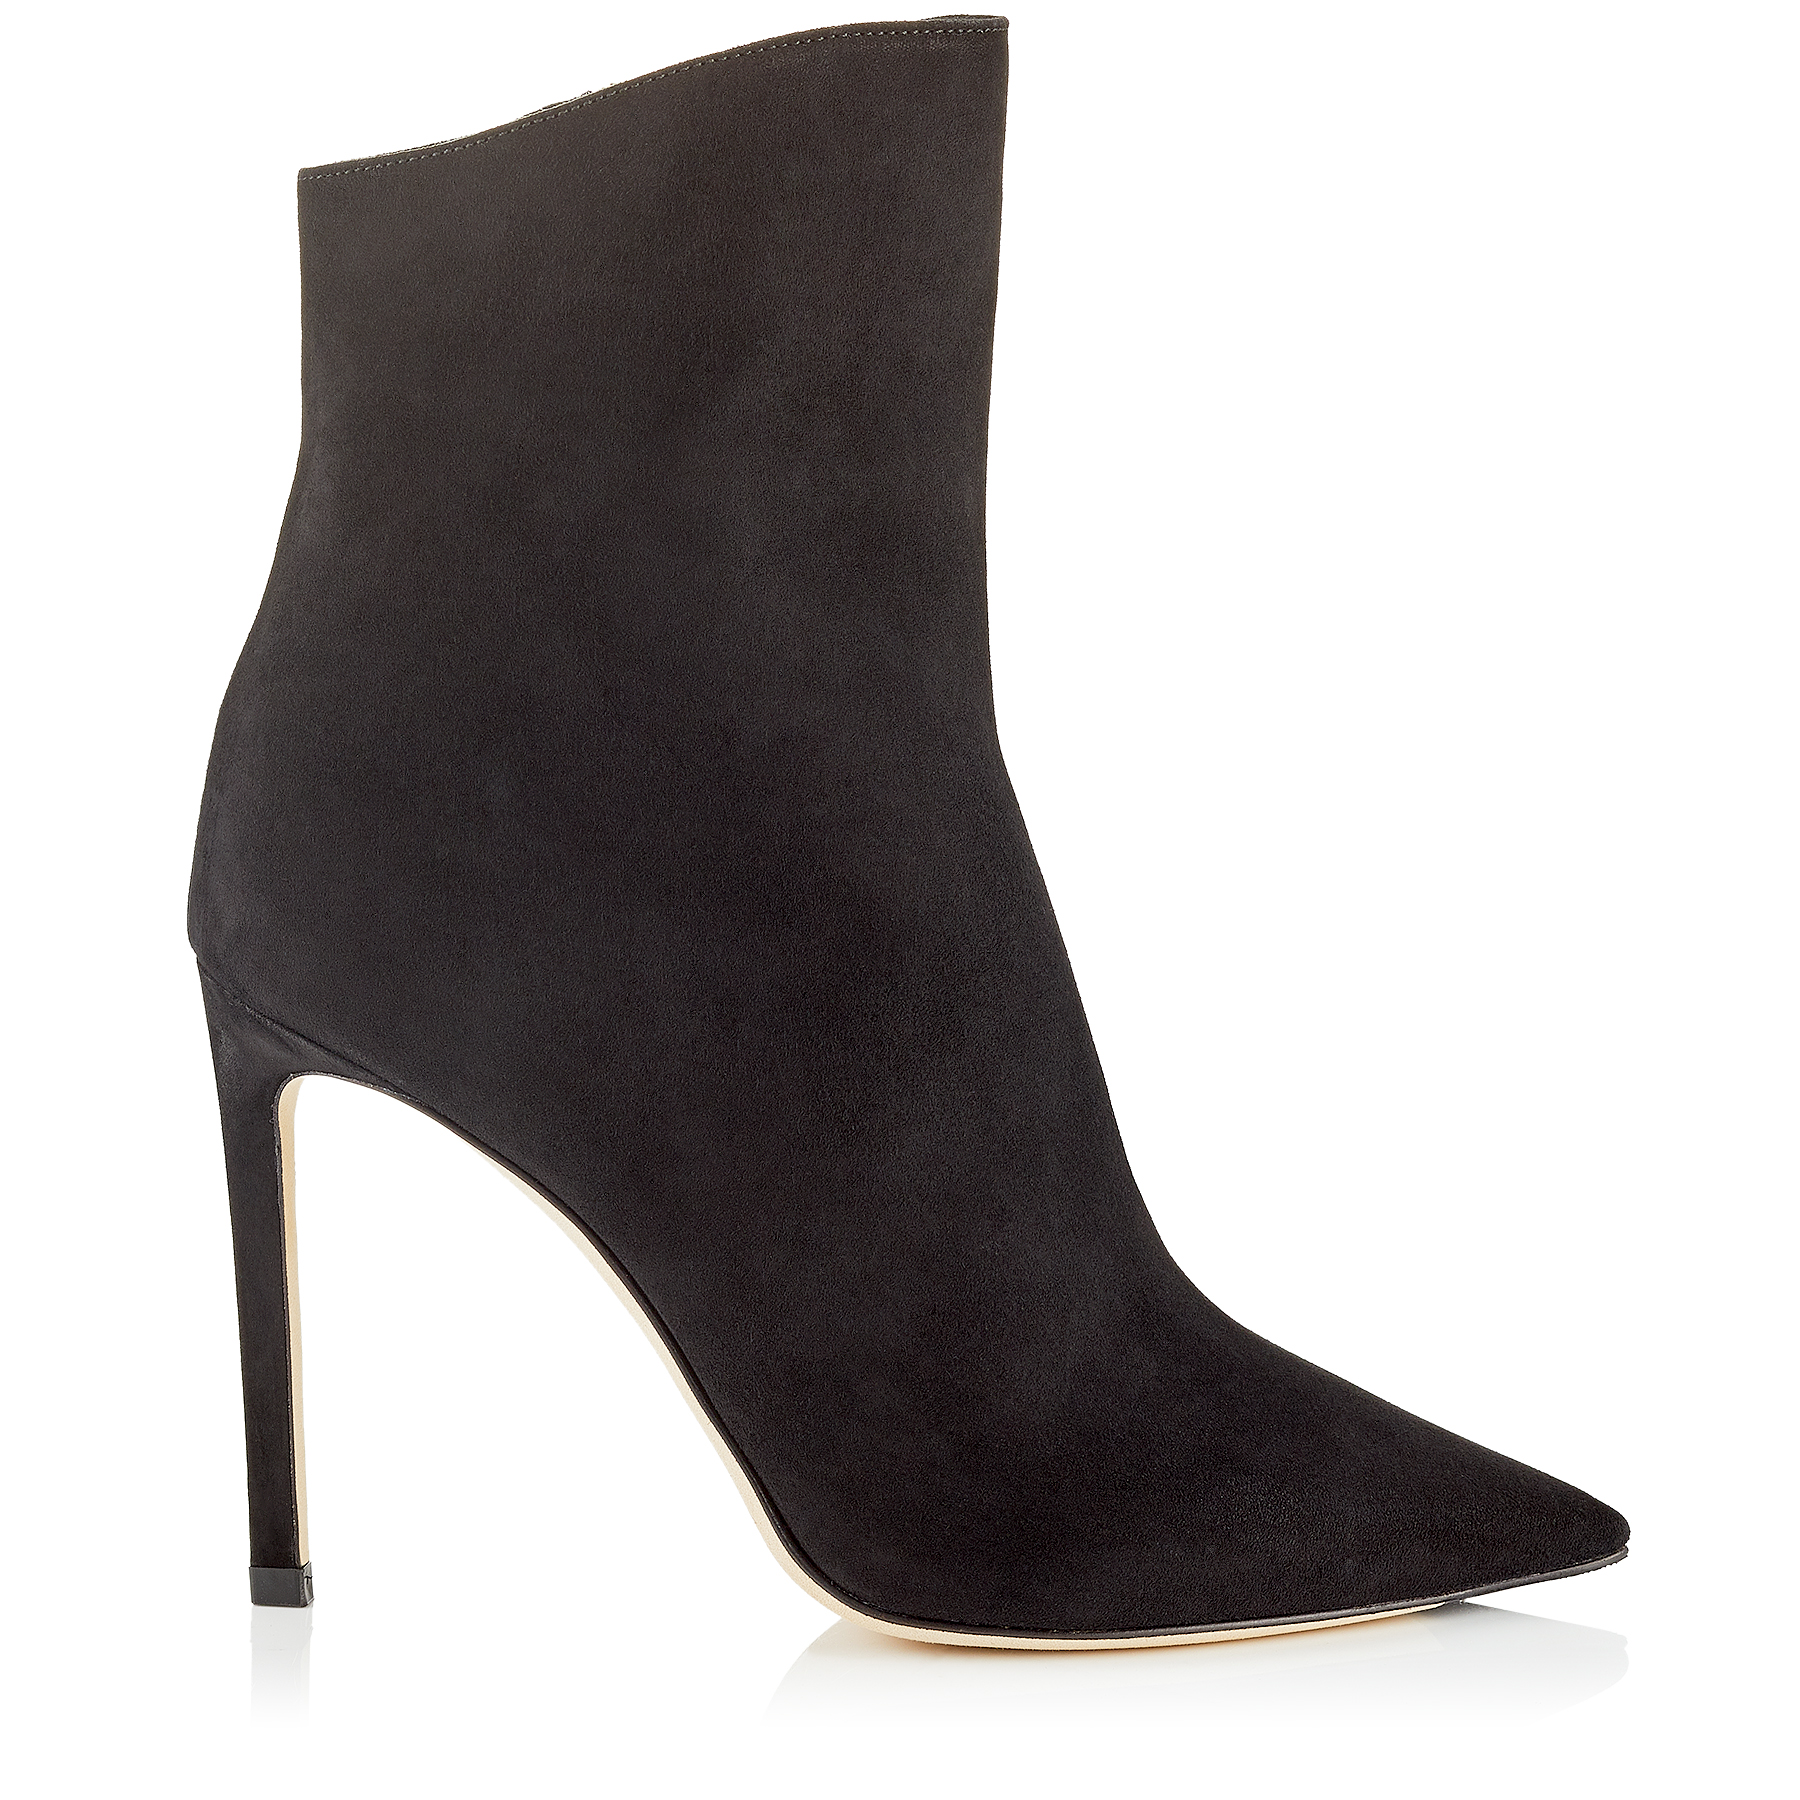 HELAINE 100 Black Suede Booties by Jimmy Choo